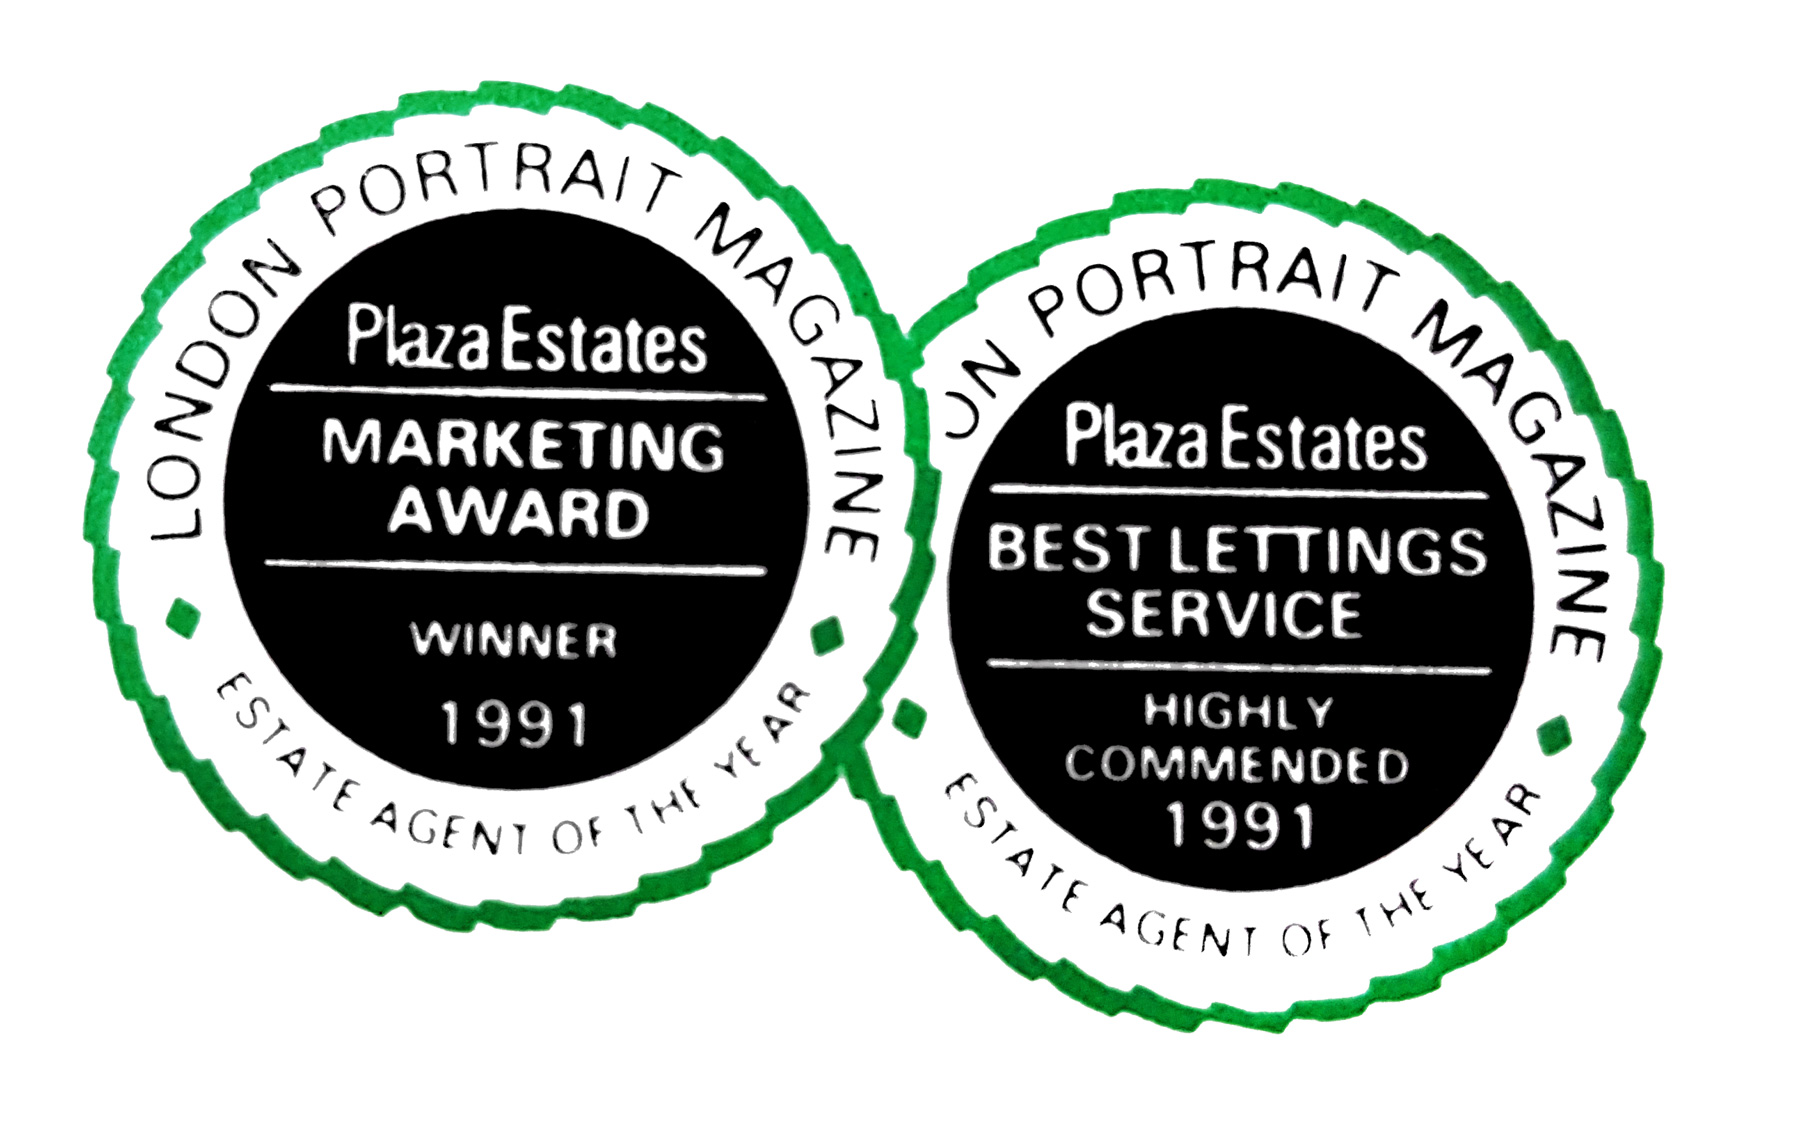 To give you a taste we wanted to share our MARKETING AWARD & BEST LETTING SERVICE that we won 1991 :